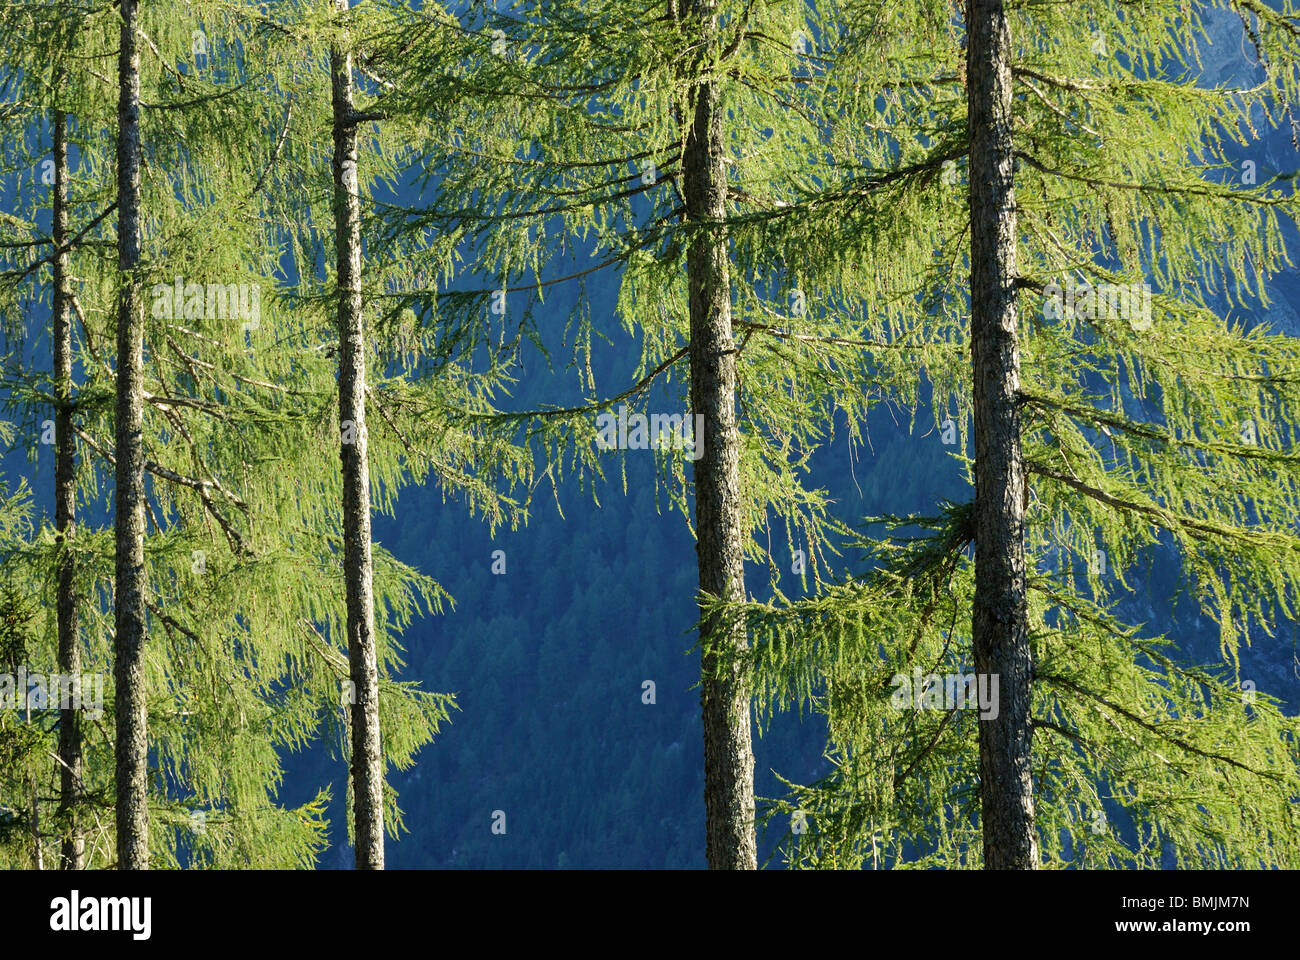 Europe, Austria, Coniferous trees in forest - Stock Image